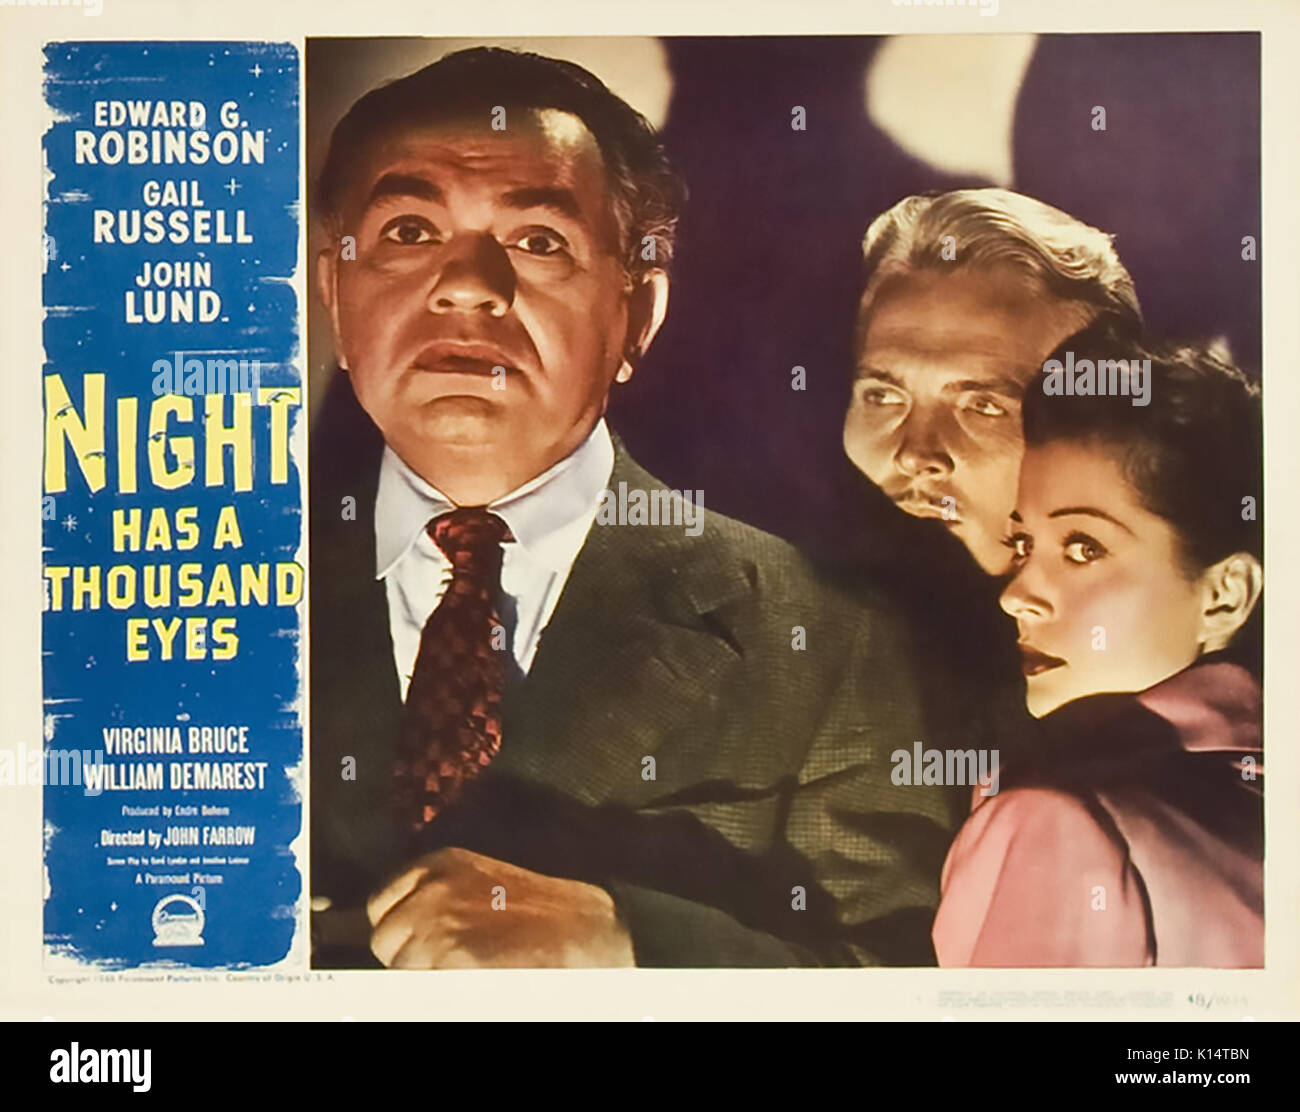 NIGHT HAS A THOUSAND EYES 1948 Paramount Pictures film noir with from left: Edward G. Robinson, John Lund, Gail - Stock Image